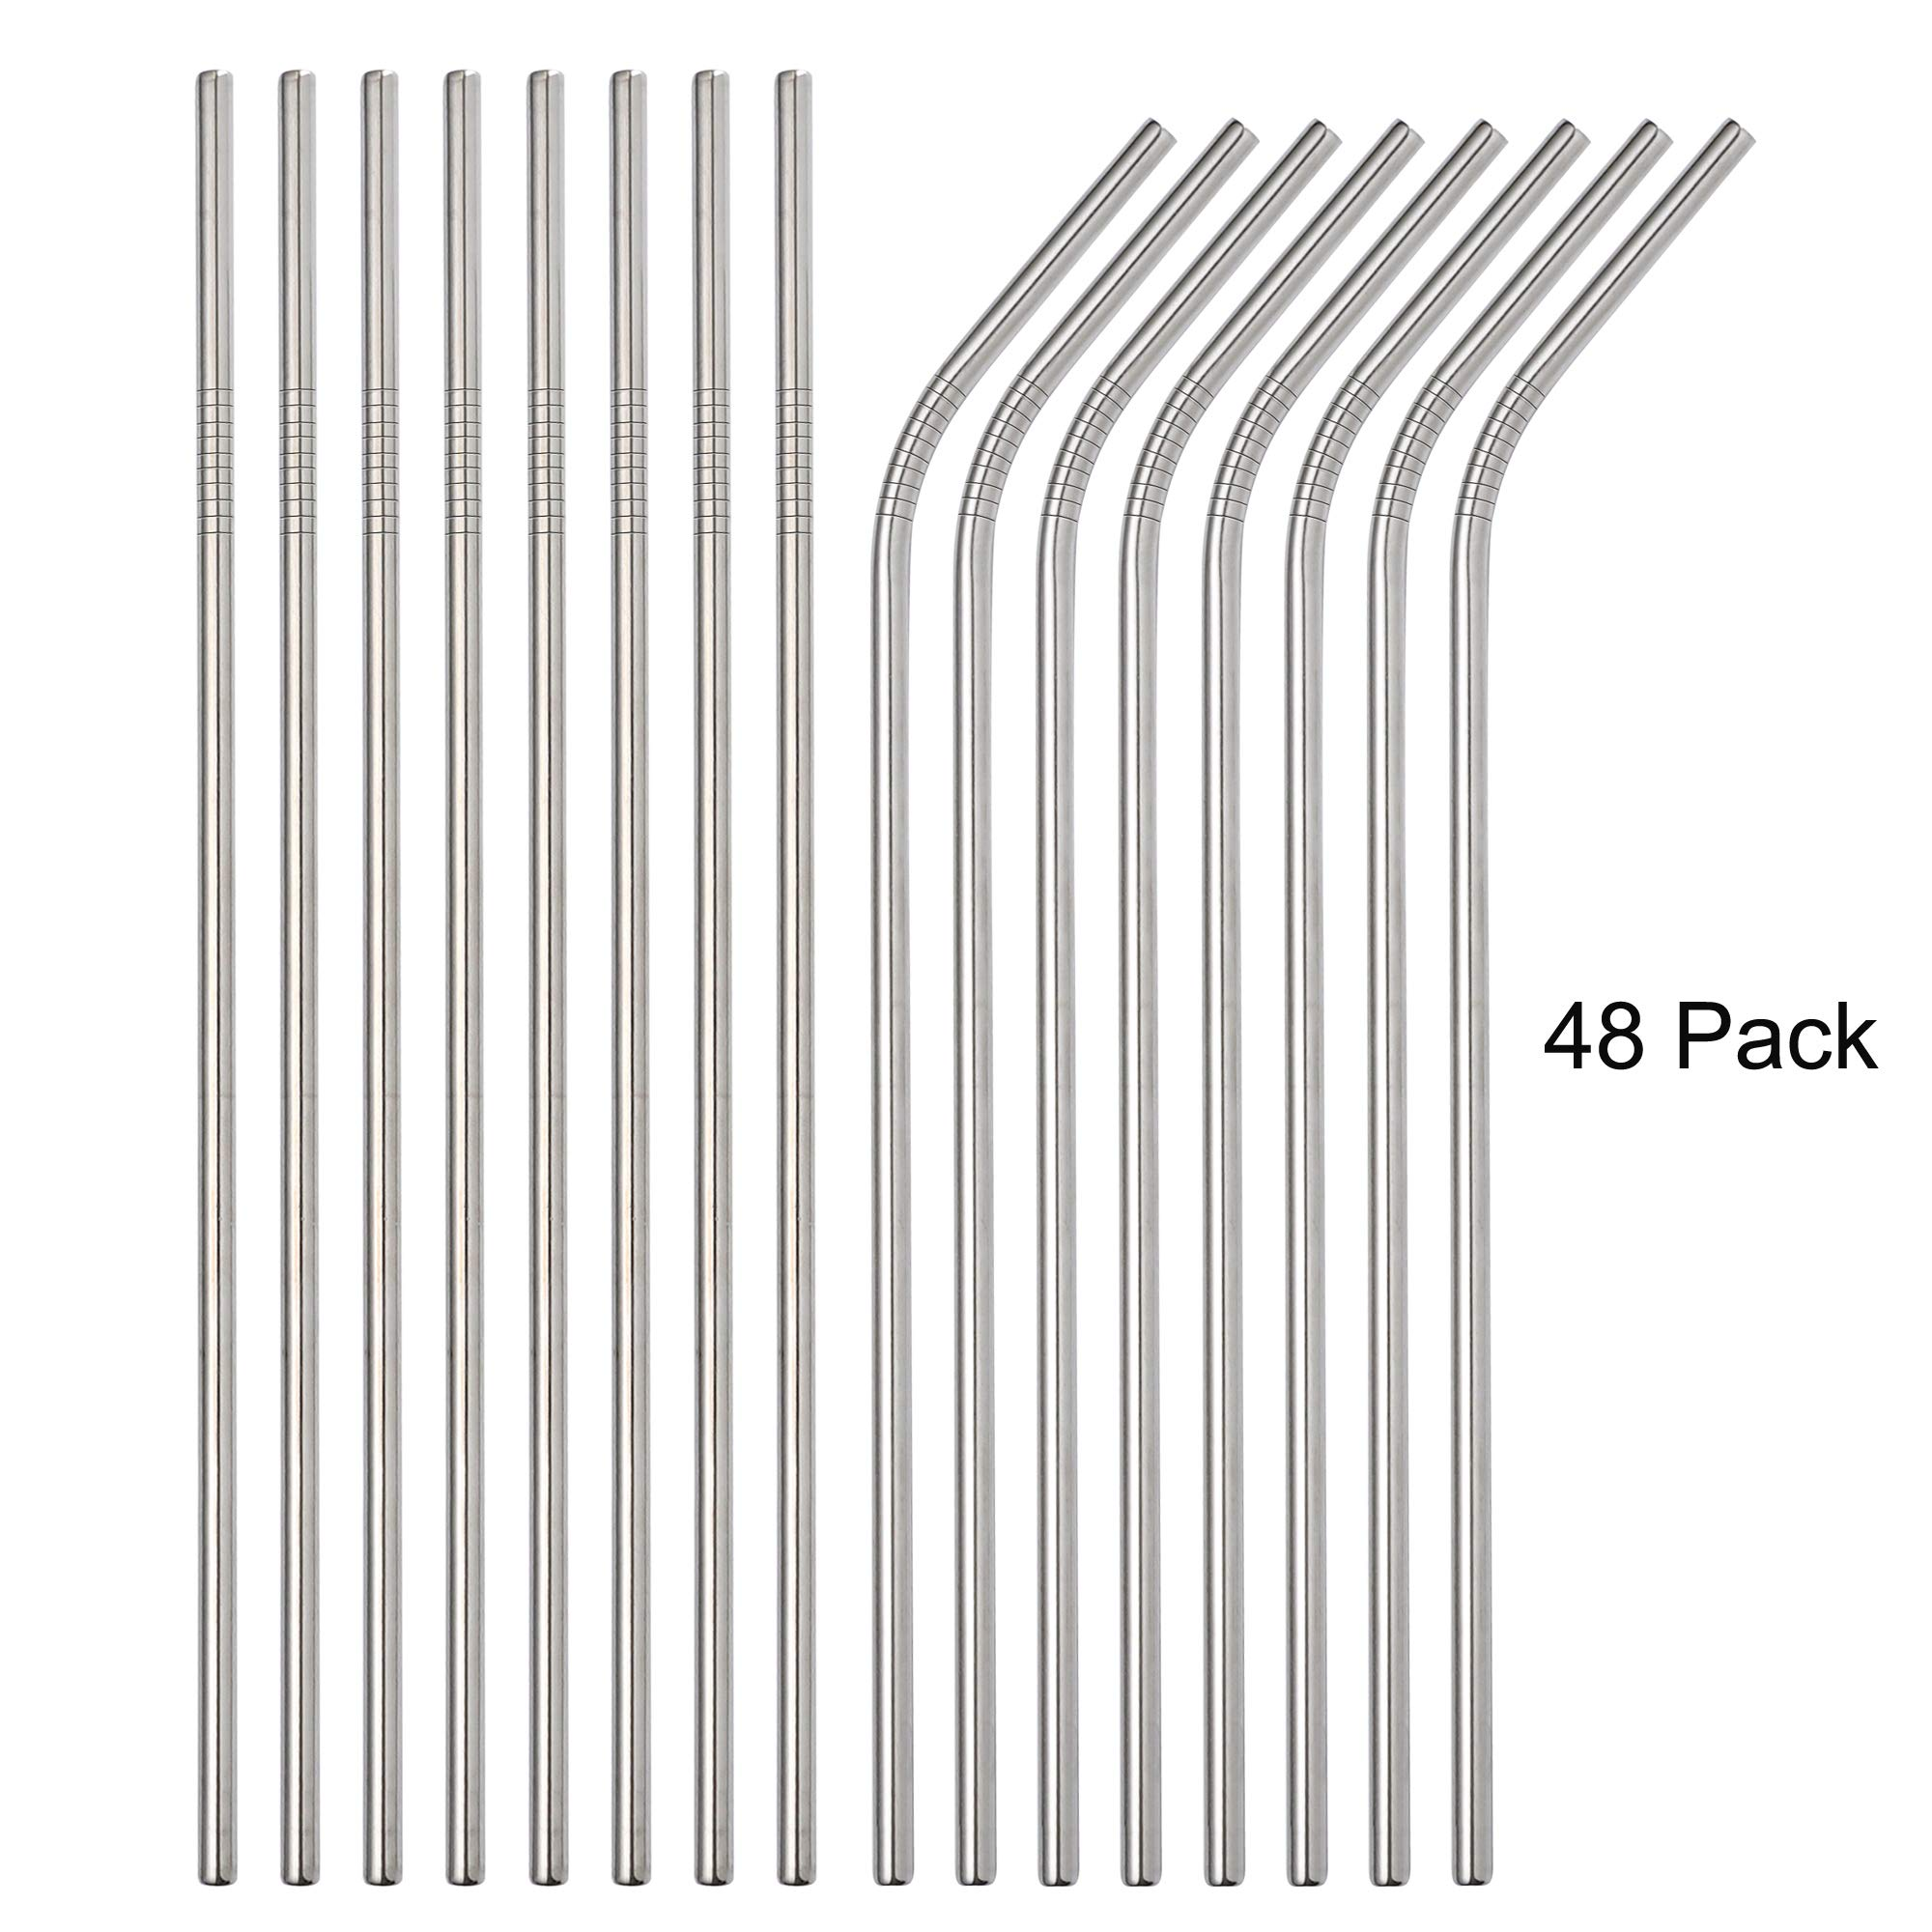 Brightbuy Set of 48 Stainless Steel Metal Straws 8.5'' Reusable Drinking Straws For 20oz Tumblers Yeti 6mm Diameter (24 Straight + 24 Bent) (Silver) by Brightbuy